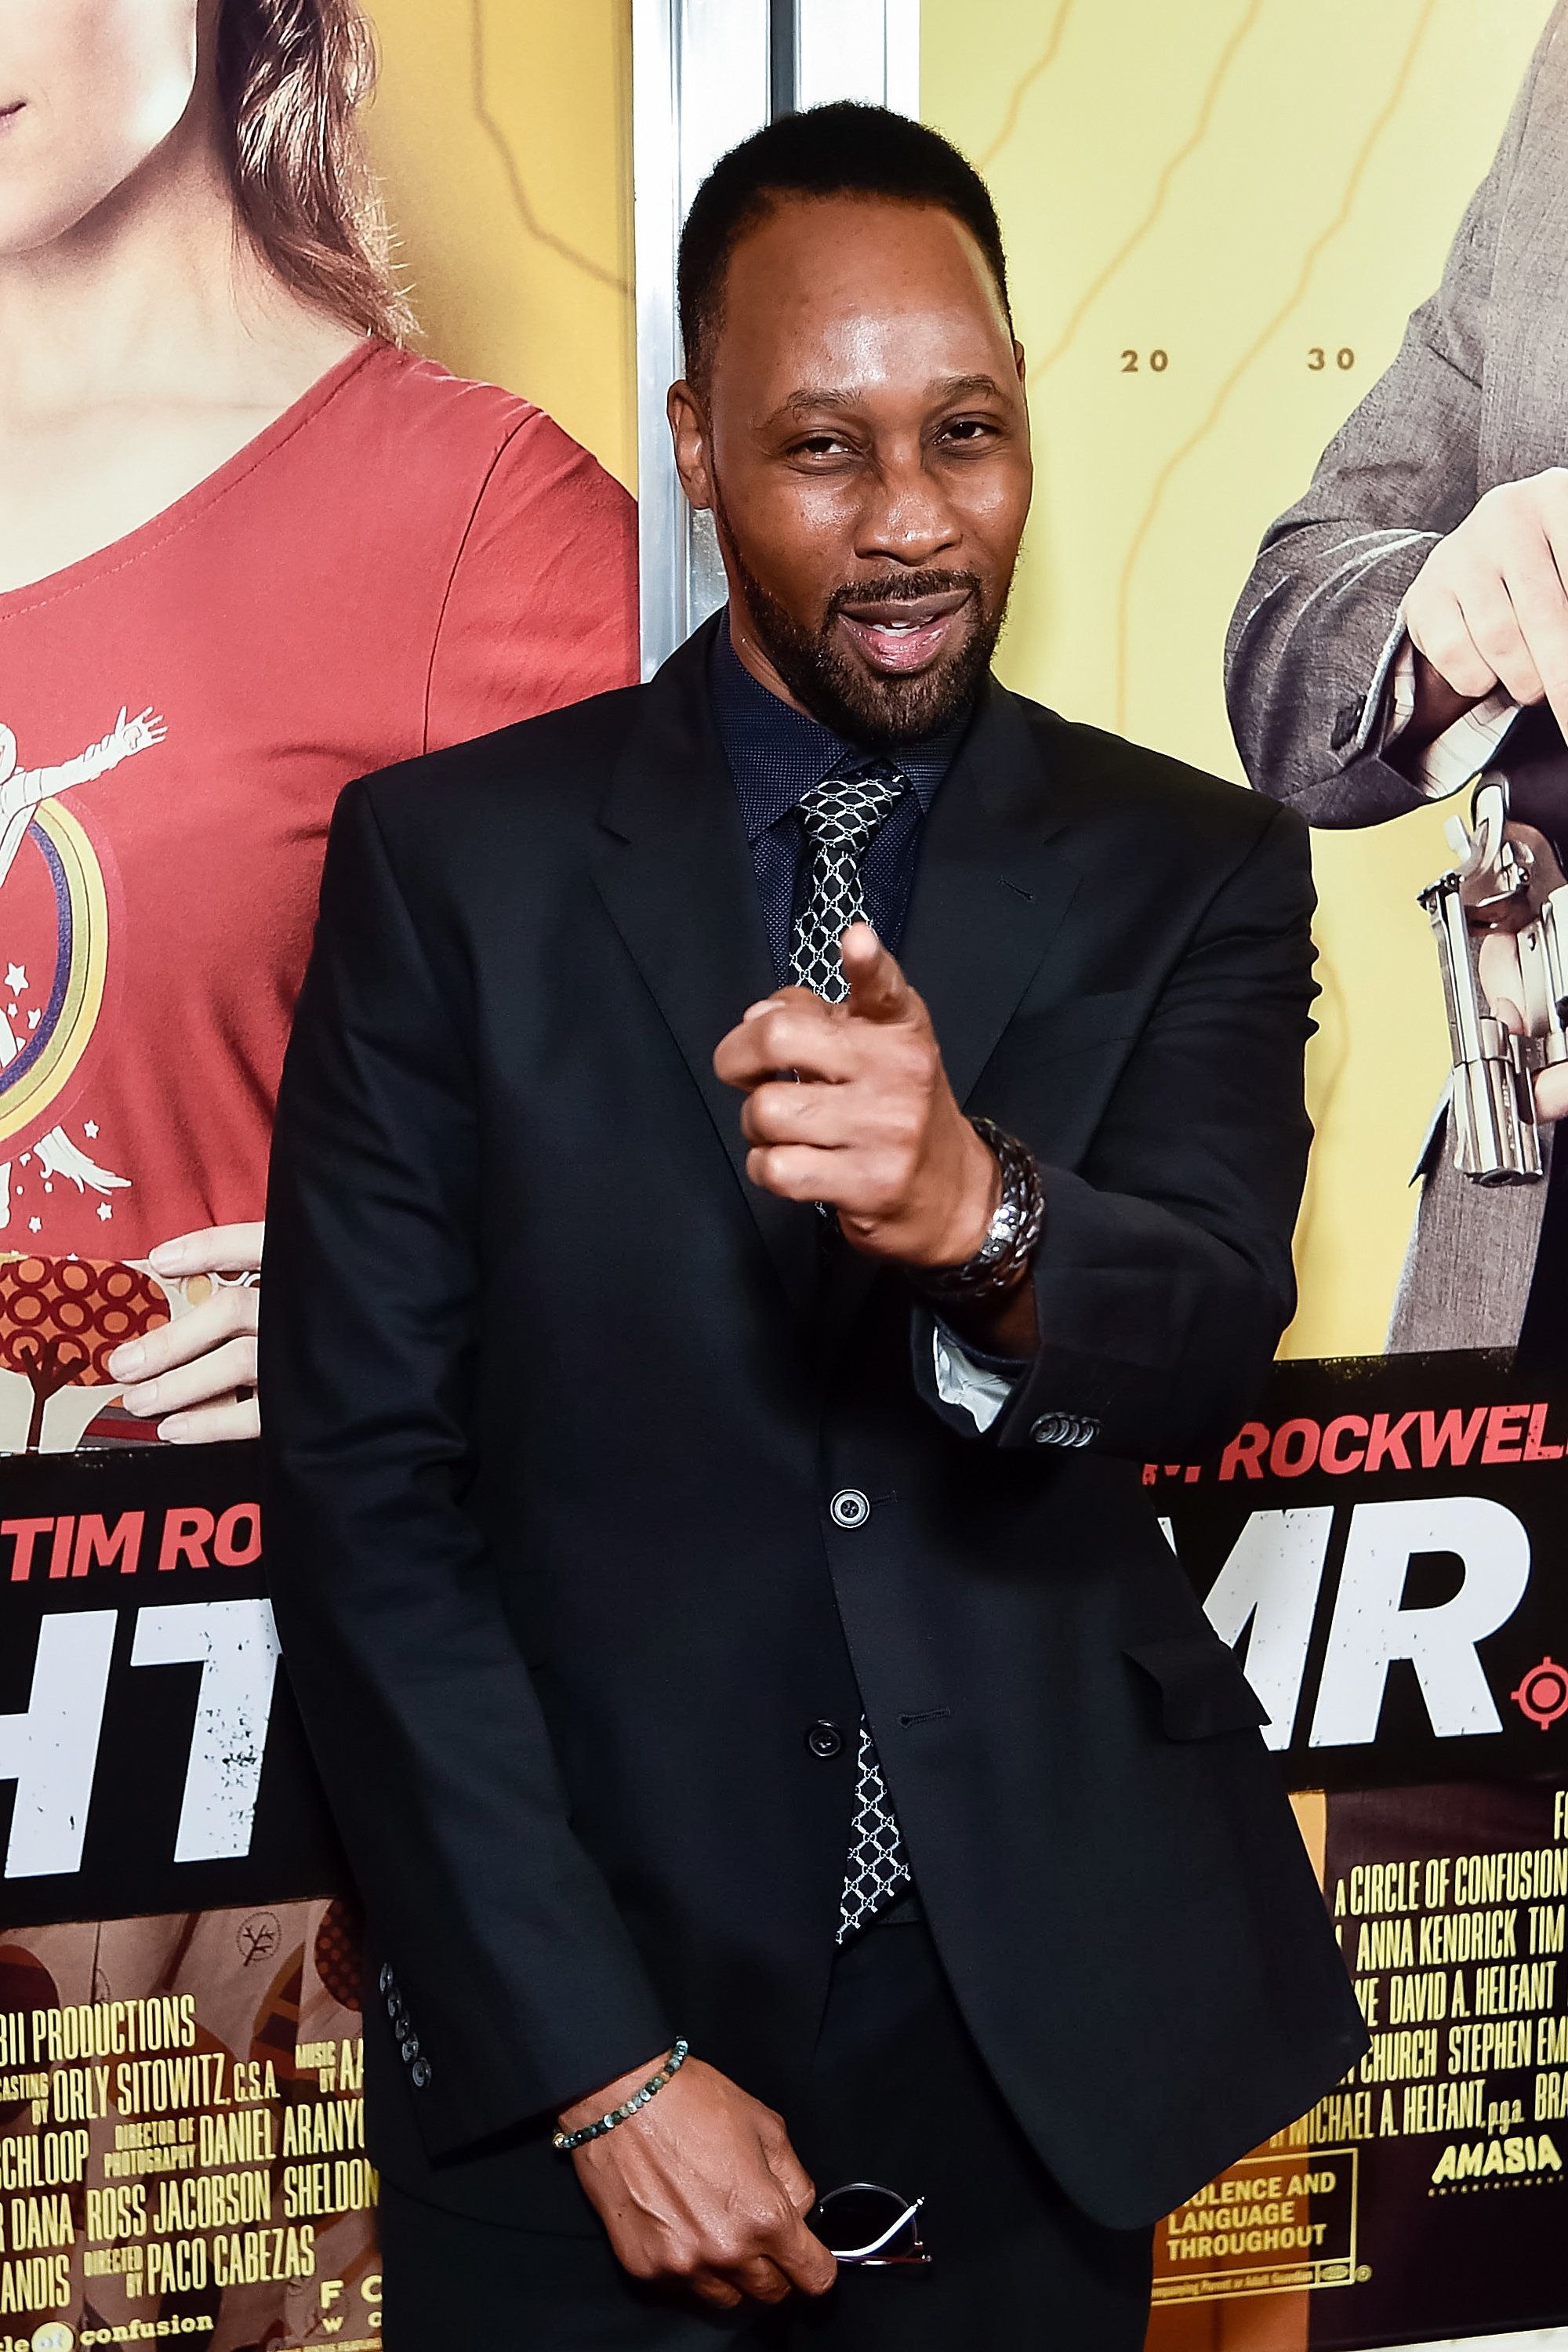 NEW YORK, NEW YORK - APRIL 06:  Actor RZA attends the 'Mr. Right' New York premiere at AMC Lincoln Square Theater on April 6, 2016 in New York City.  (Photo by Michael Stewart/FilmMagic)